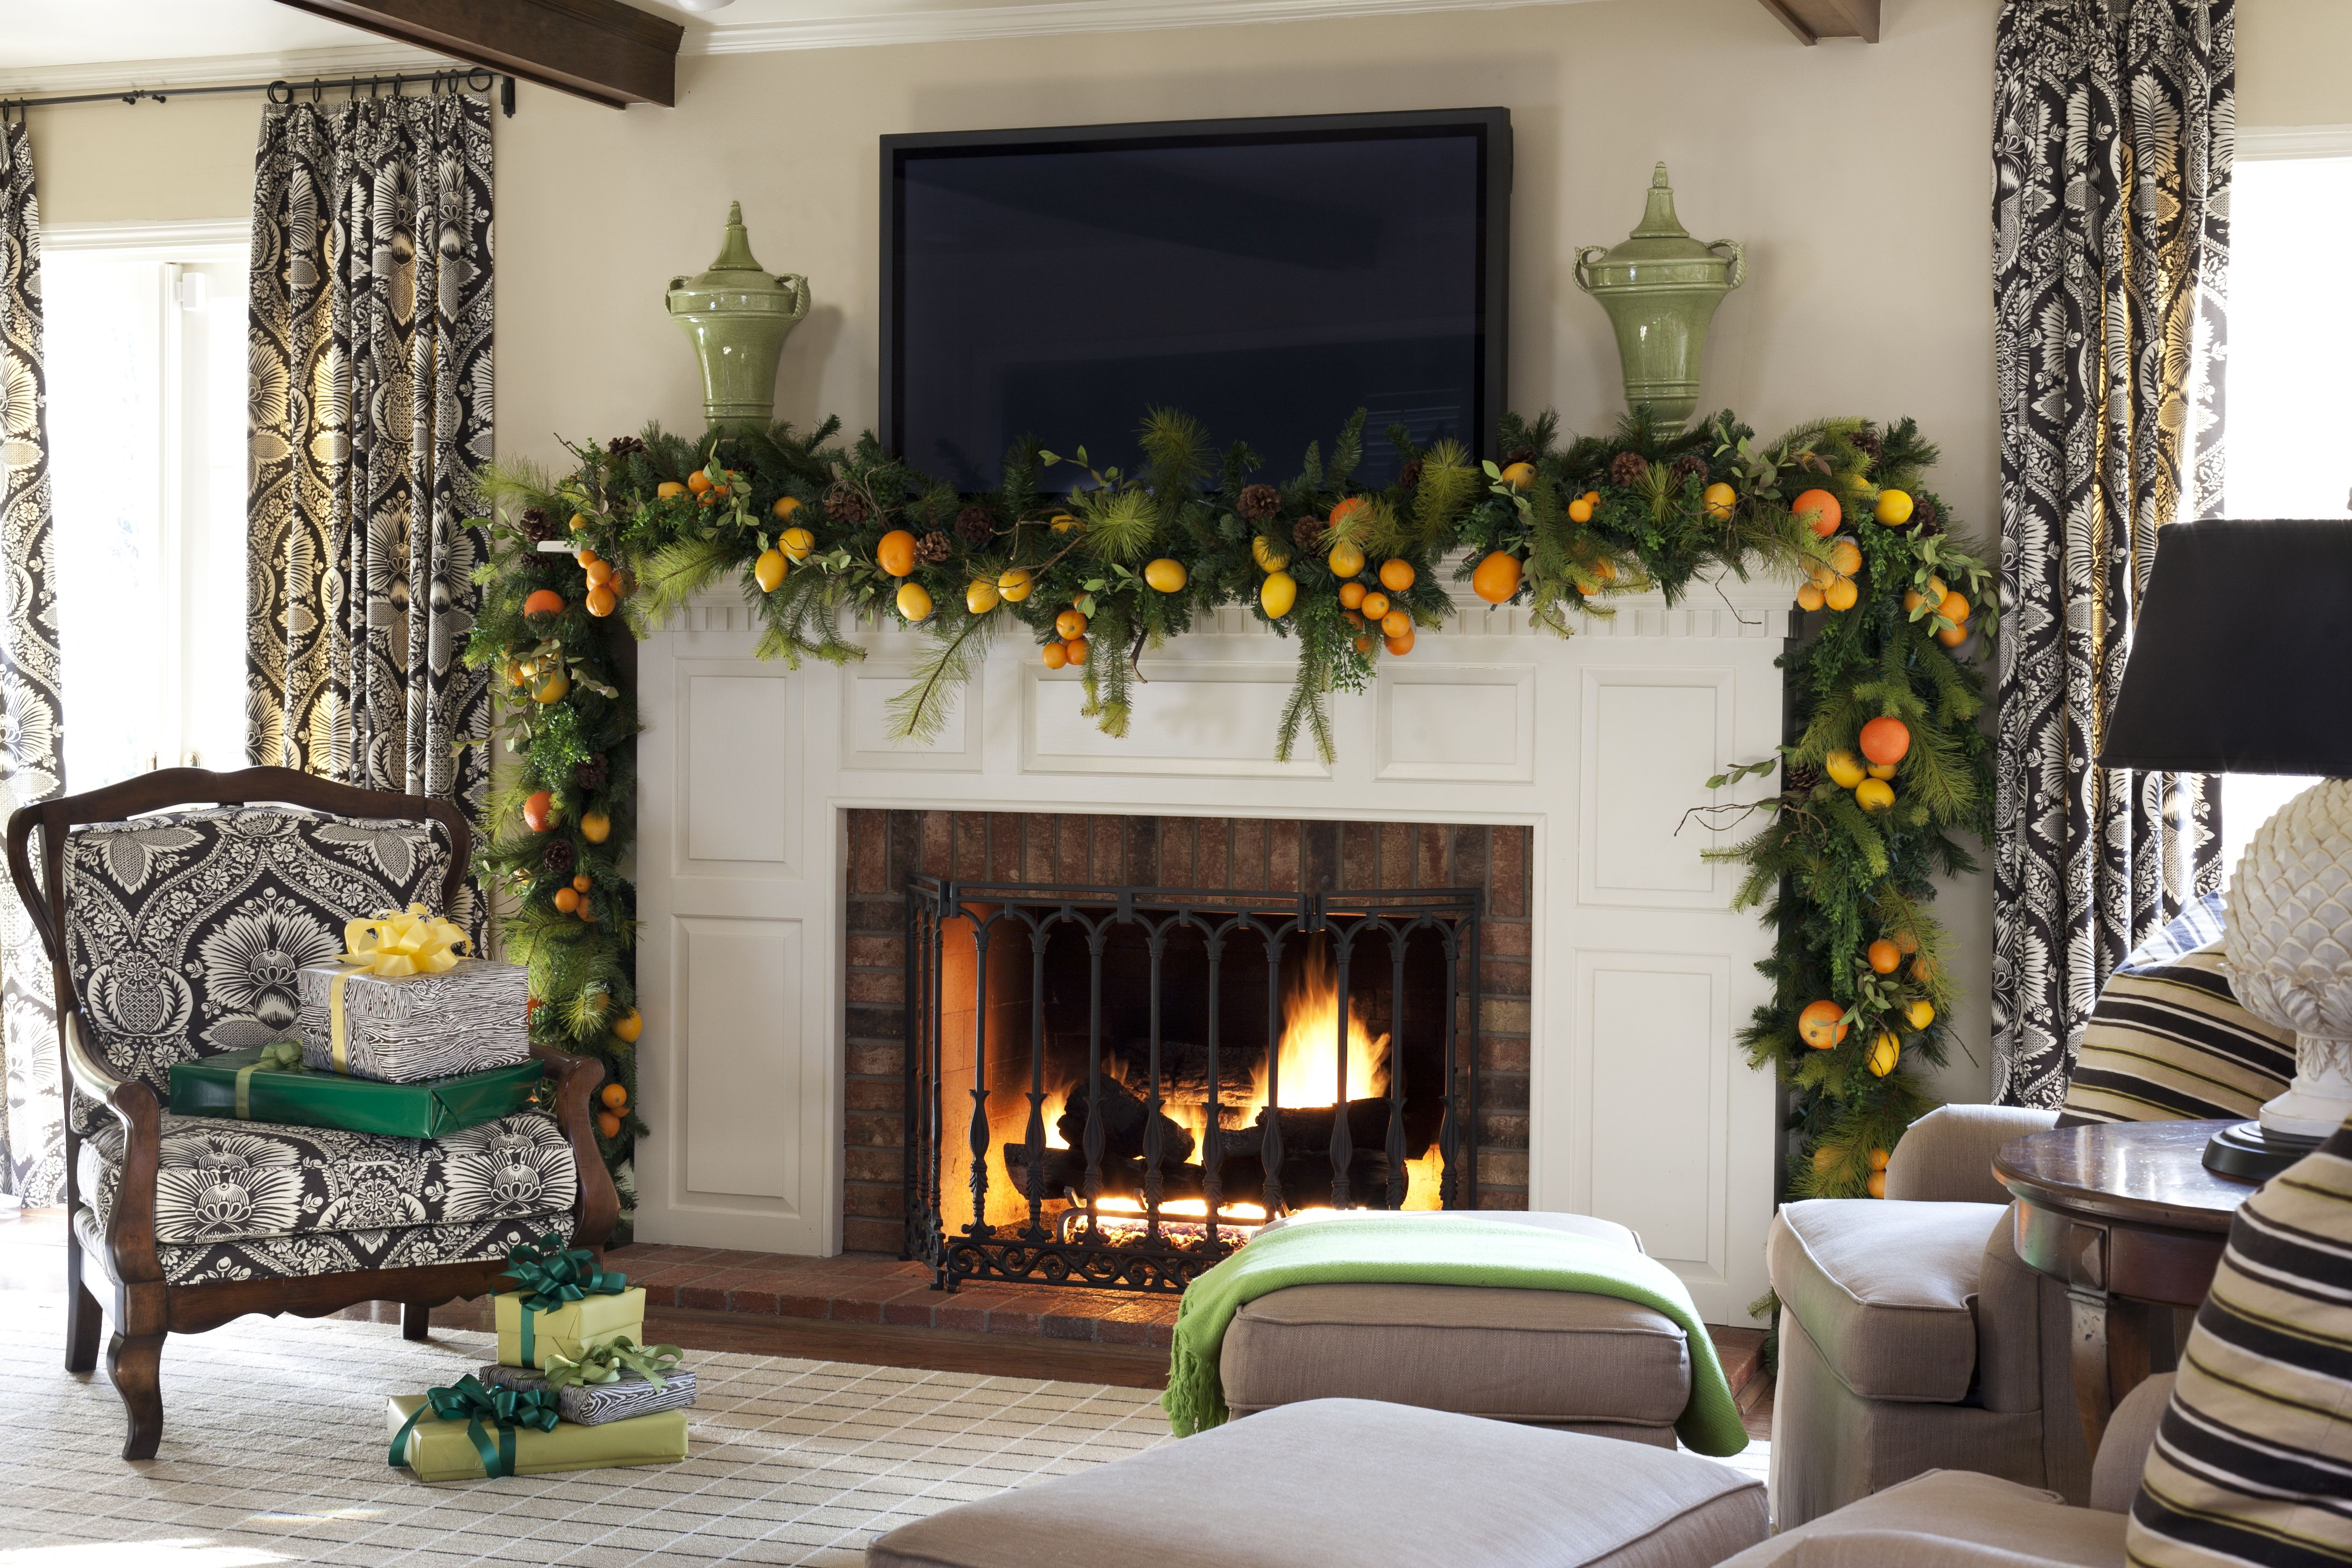 Christmas Interior Design 20 Best Christmas Decorating Ideas  Tips For Stylish Holiday